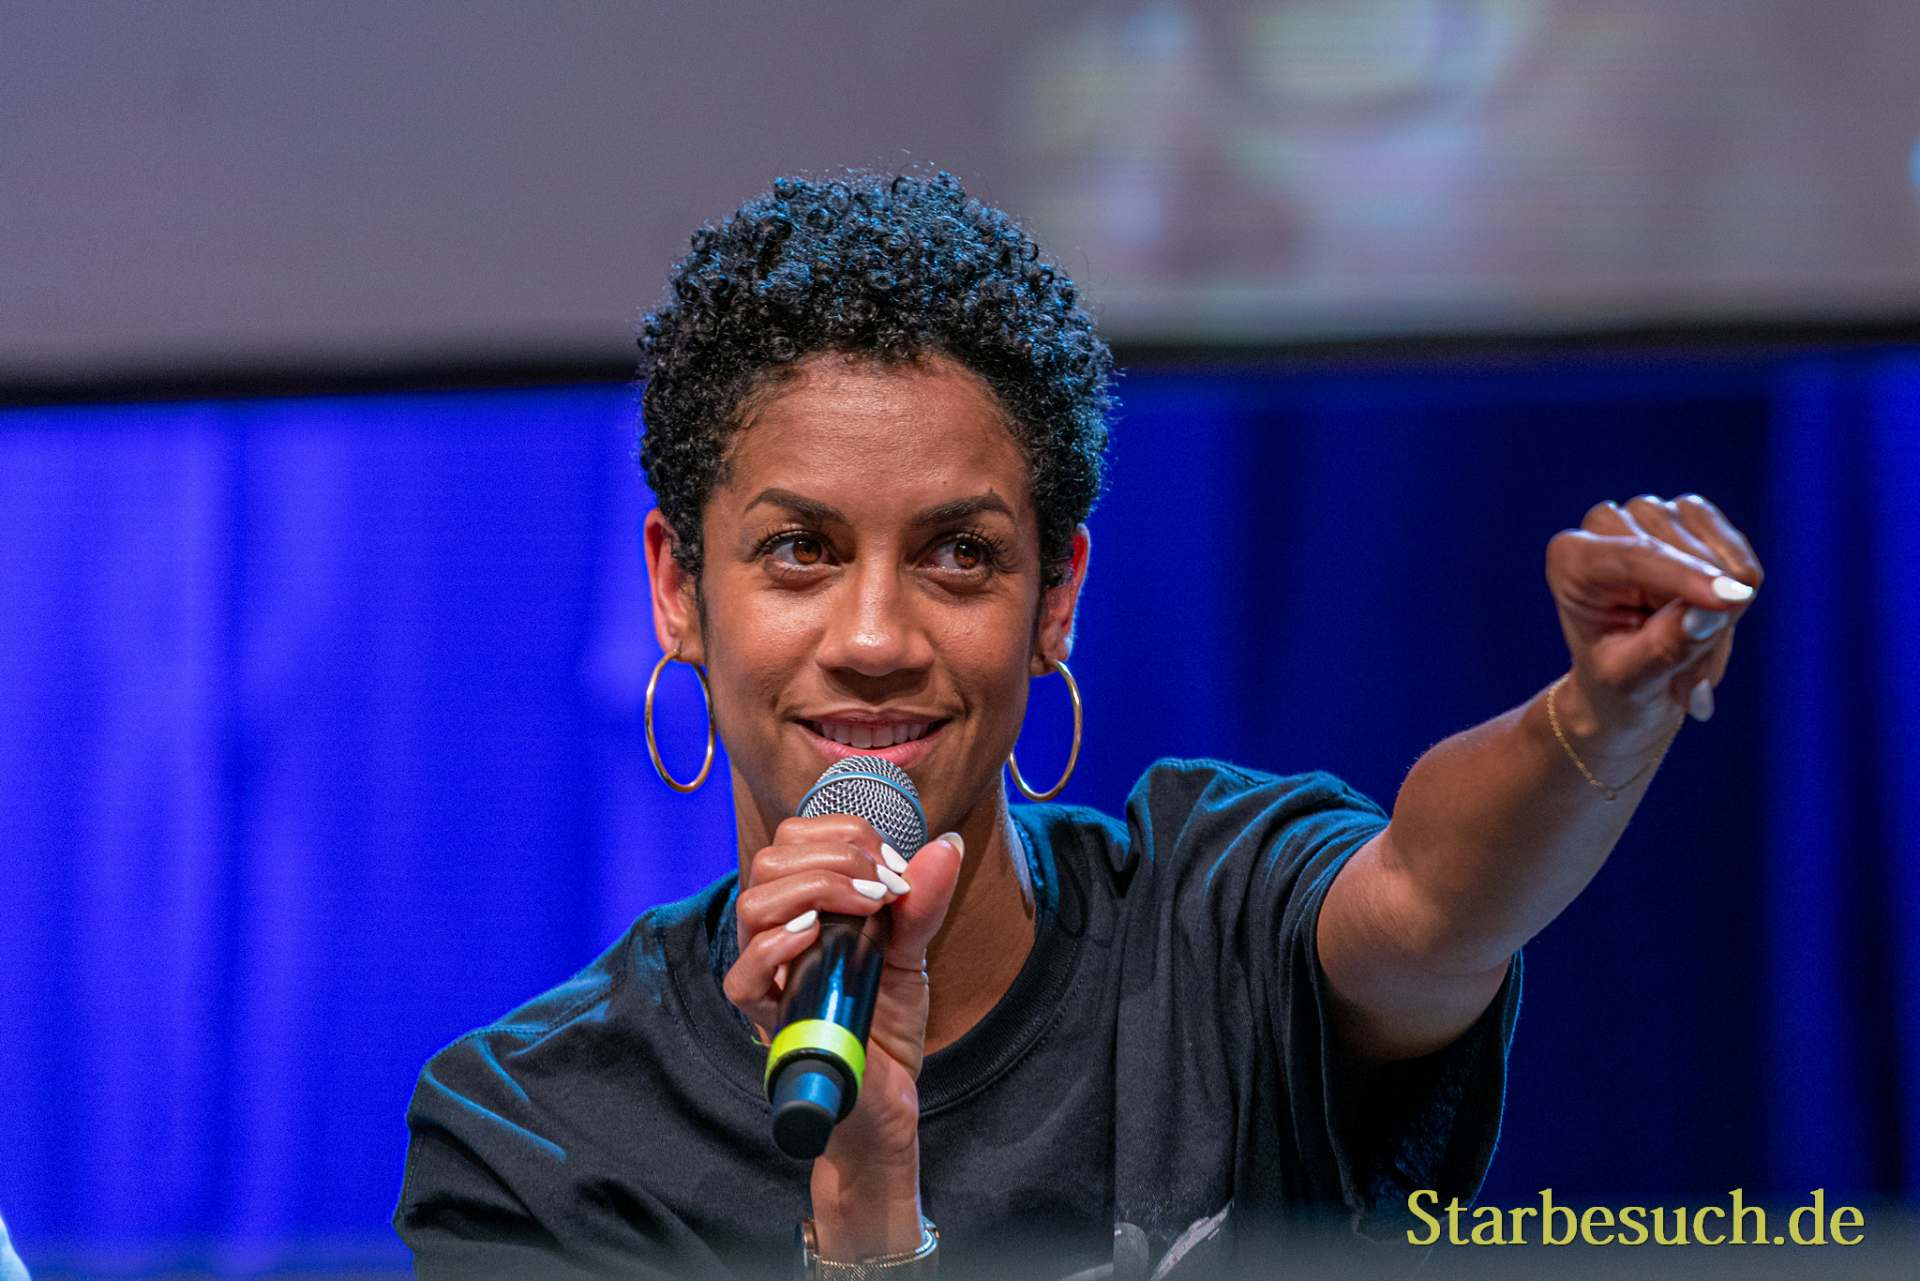 Bonn, Germany - June 8 2019: Dominique Tipper (*1987, British actress, singer-songwriter and dancer - The Expanse) talks about her experiences in The Expanse at FedCon 28